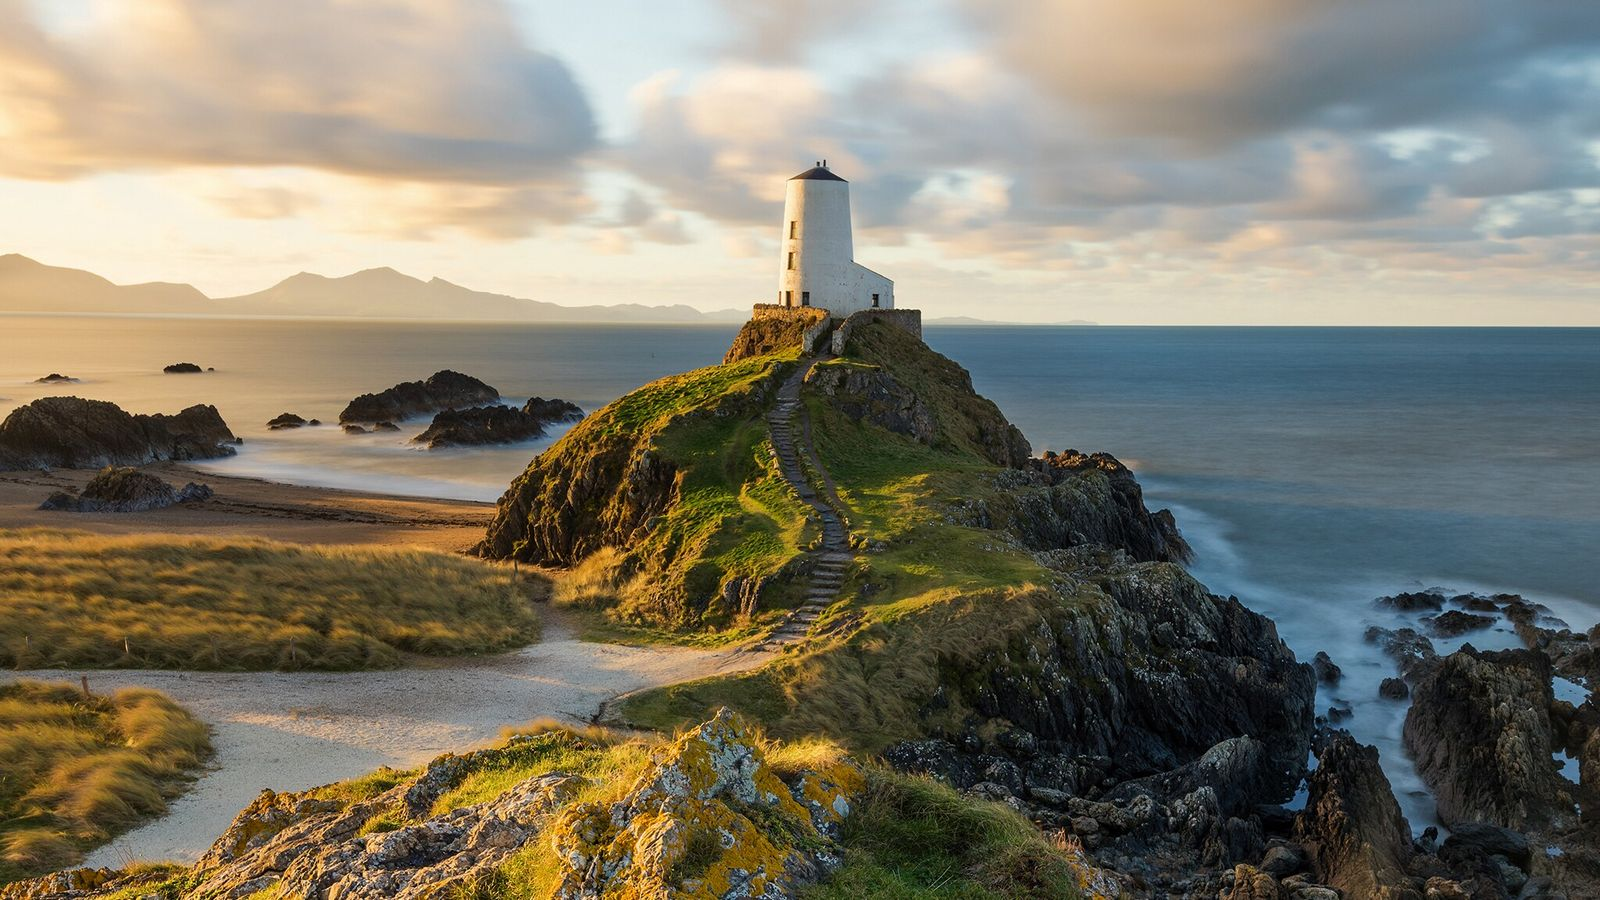 Morning light at Llanddwyn Lighthouse, on the south coast of Anglesey.